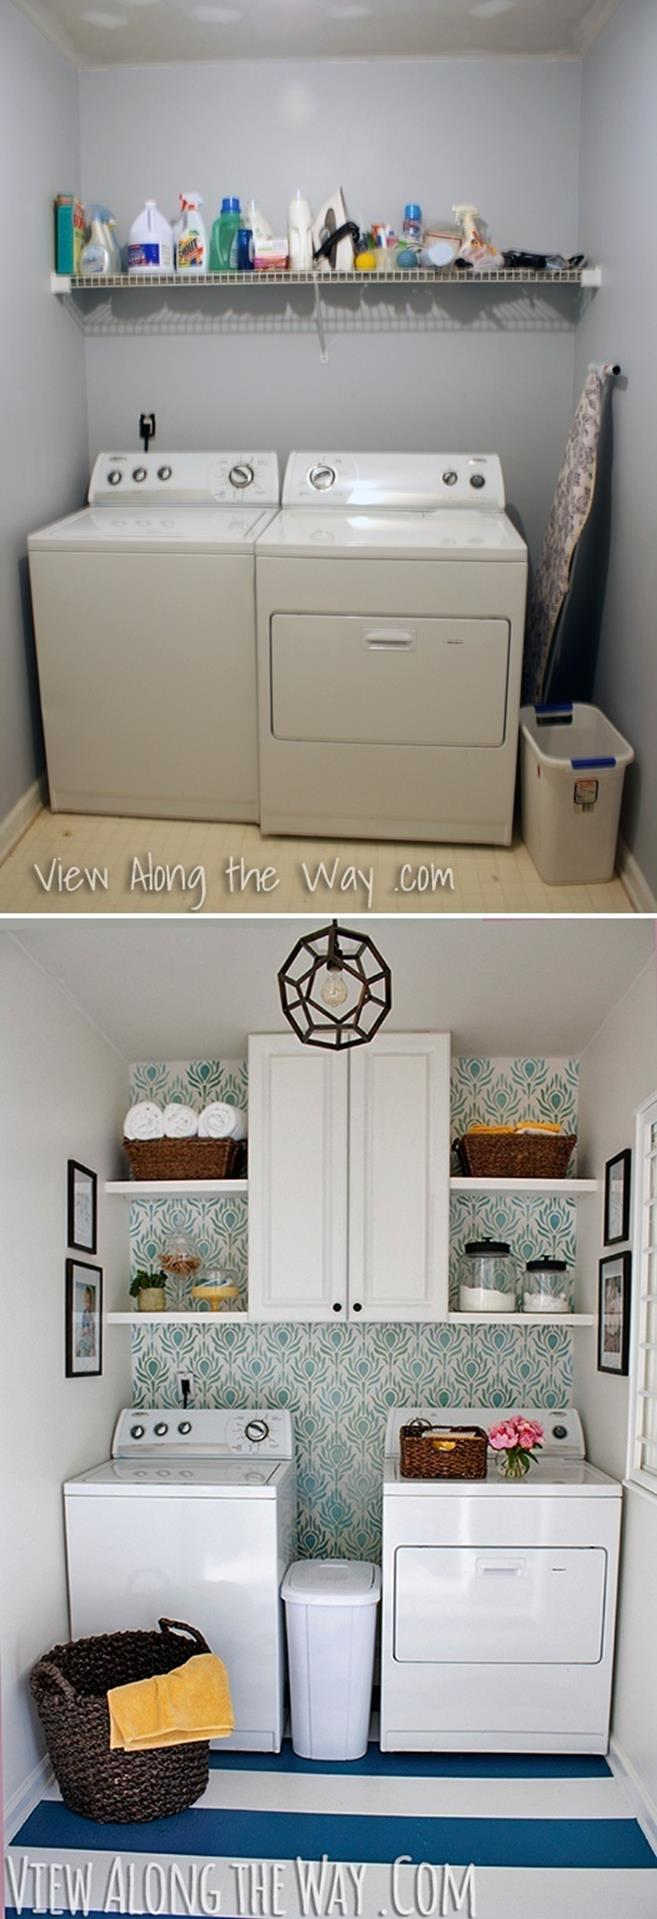 DIY Small Laundry Room Makeovers On a Budget 6